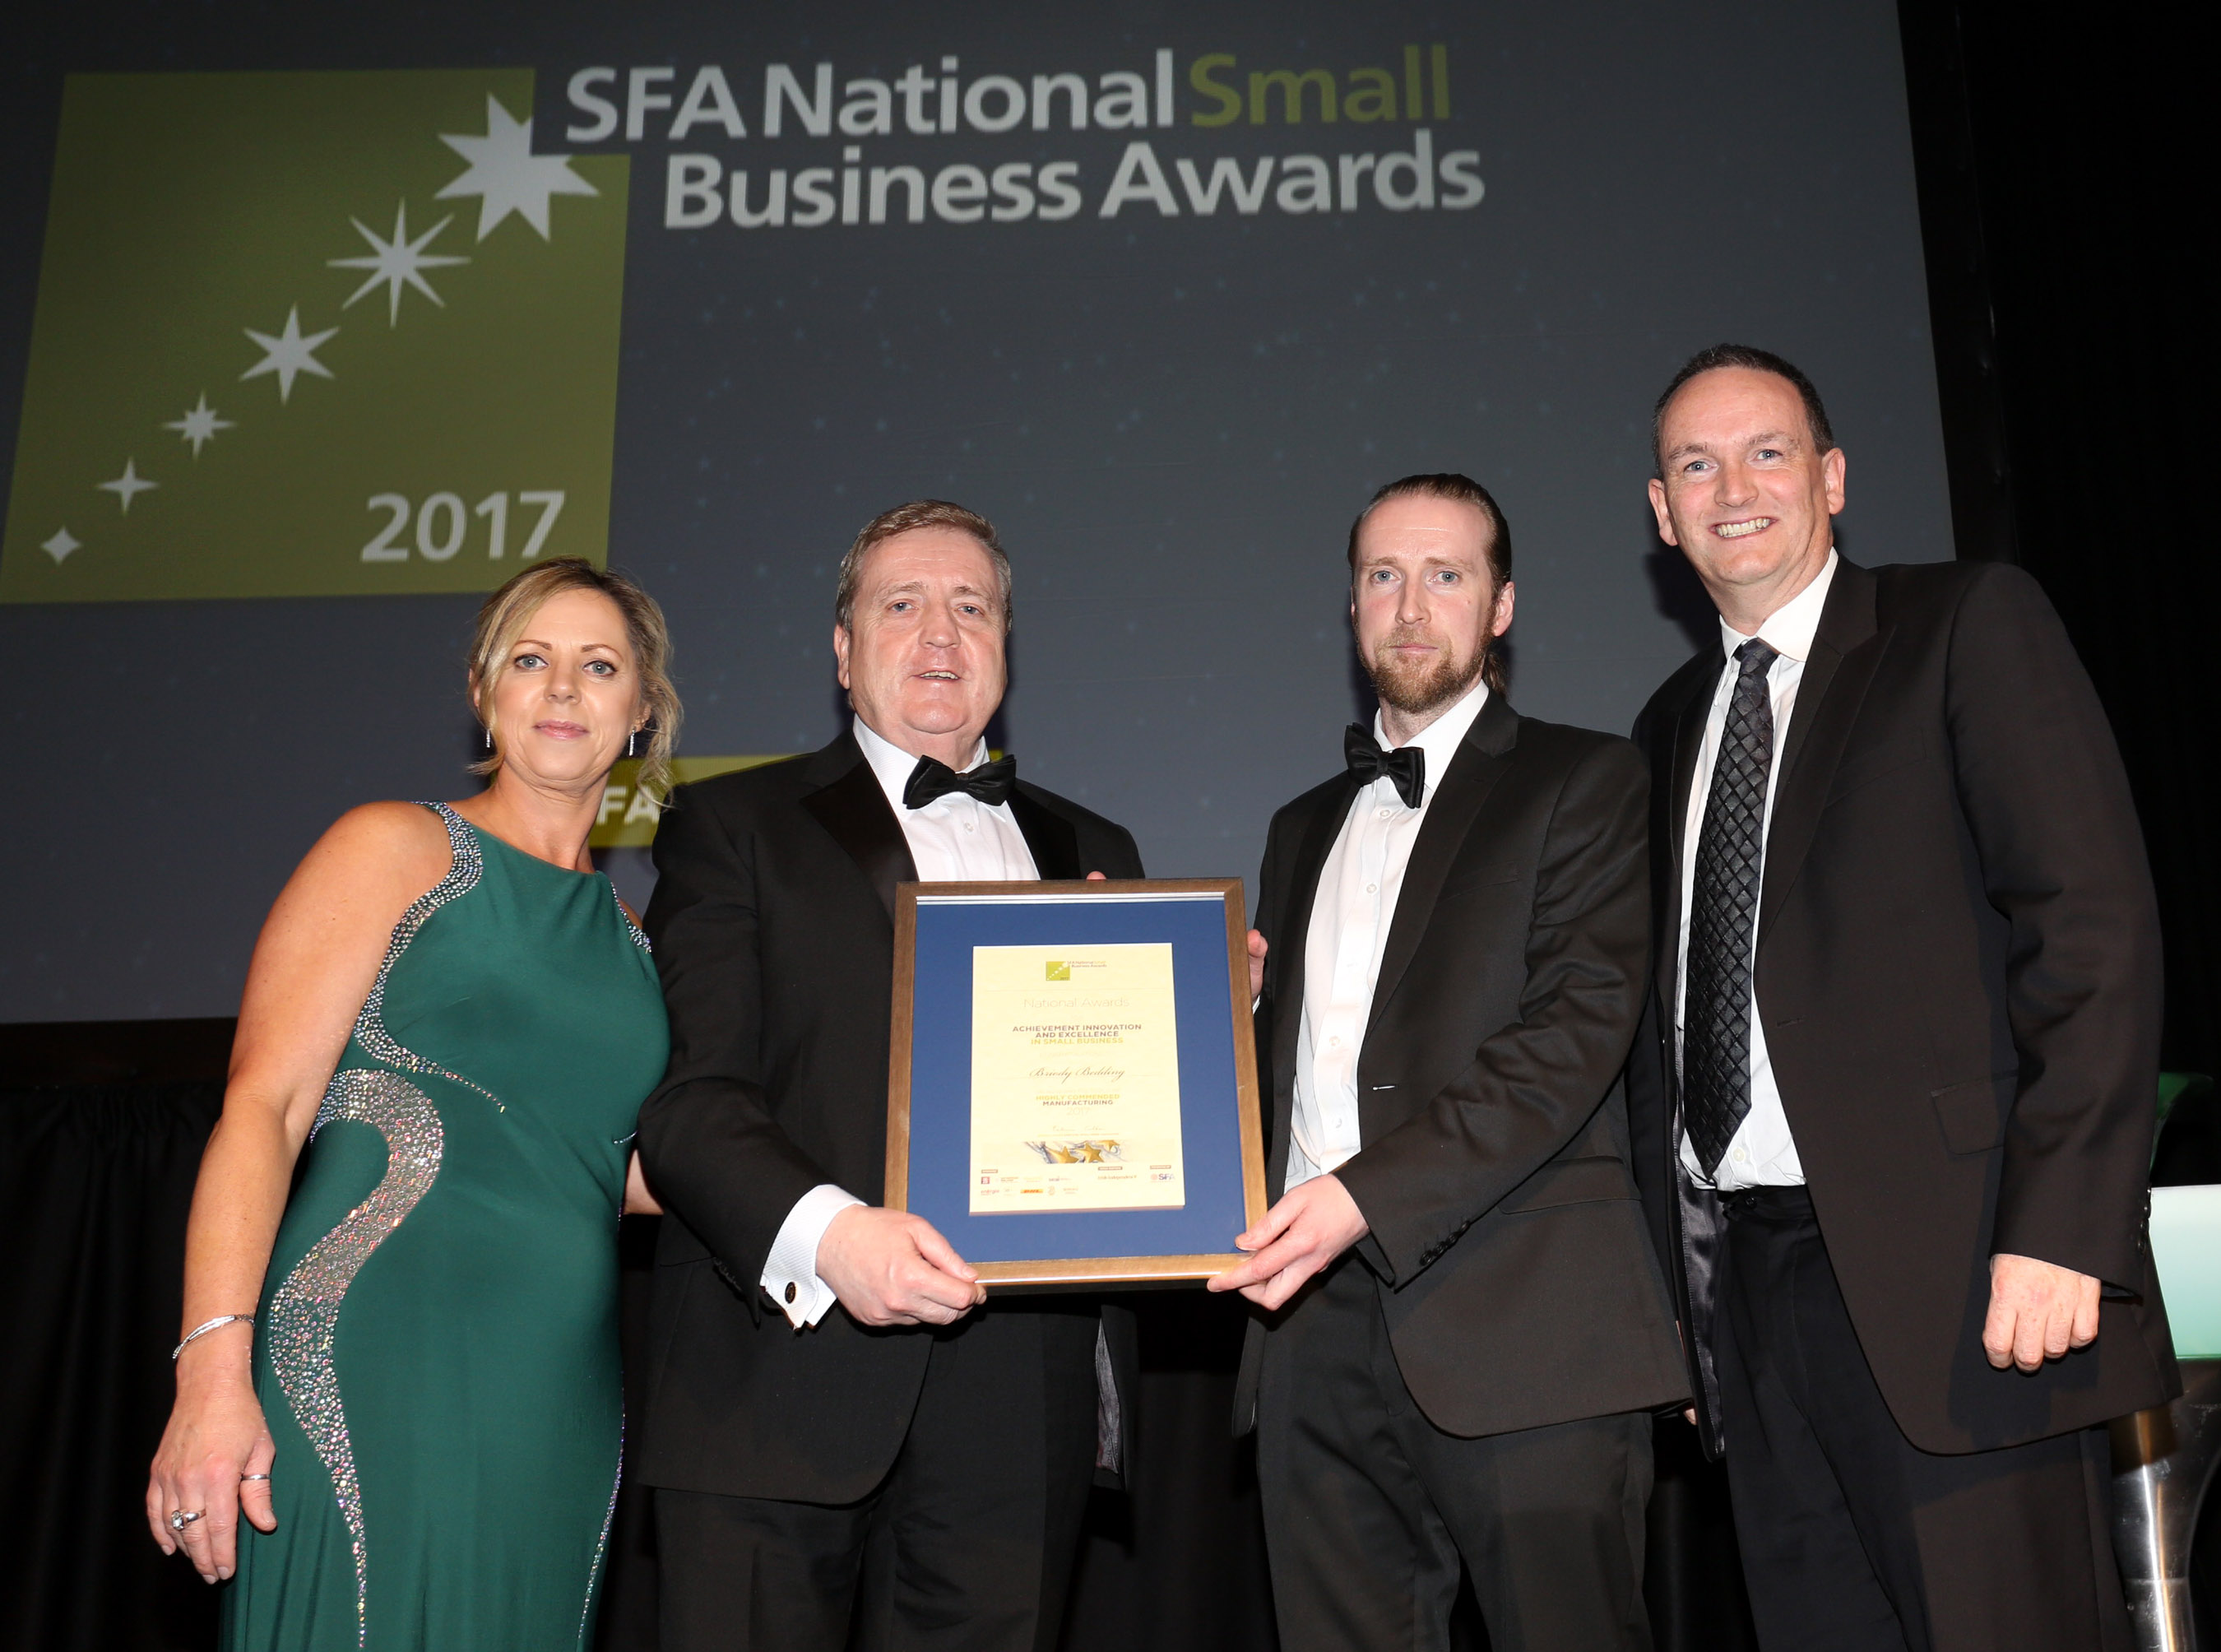 Oldcastle-based Briody Beds is highly commended in SFA National Small Business Awards